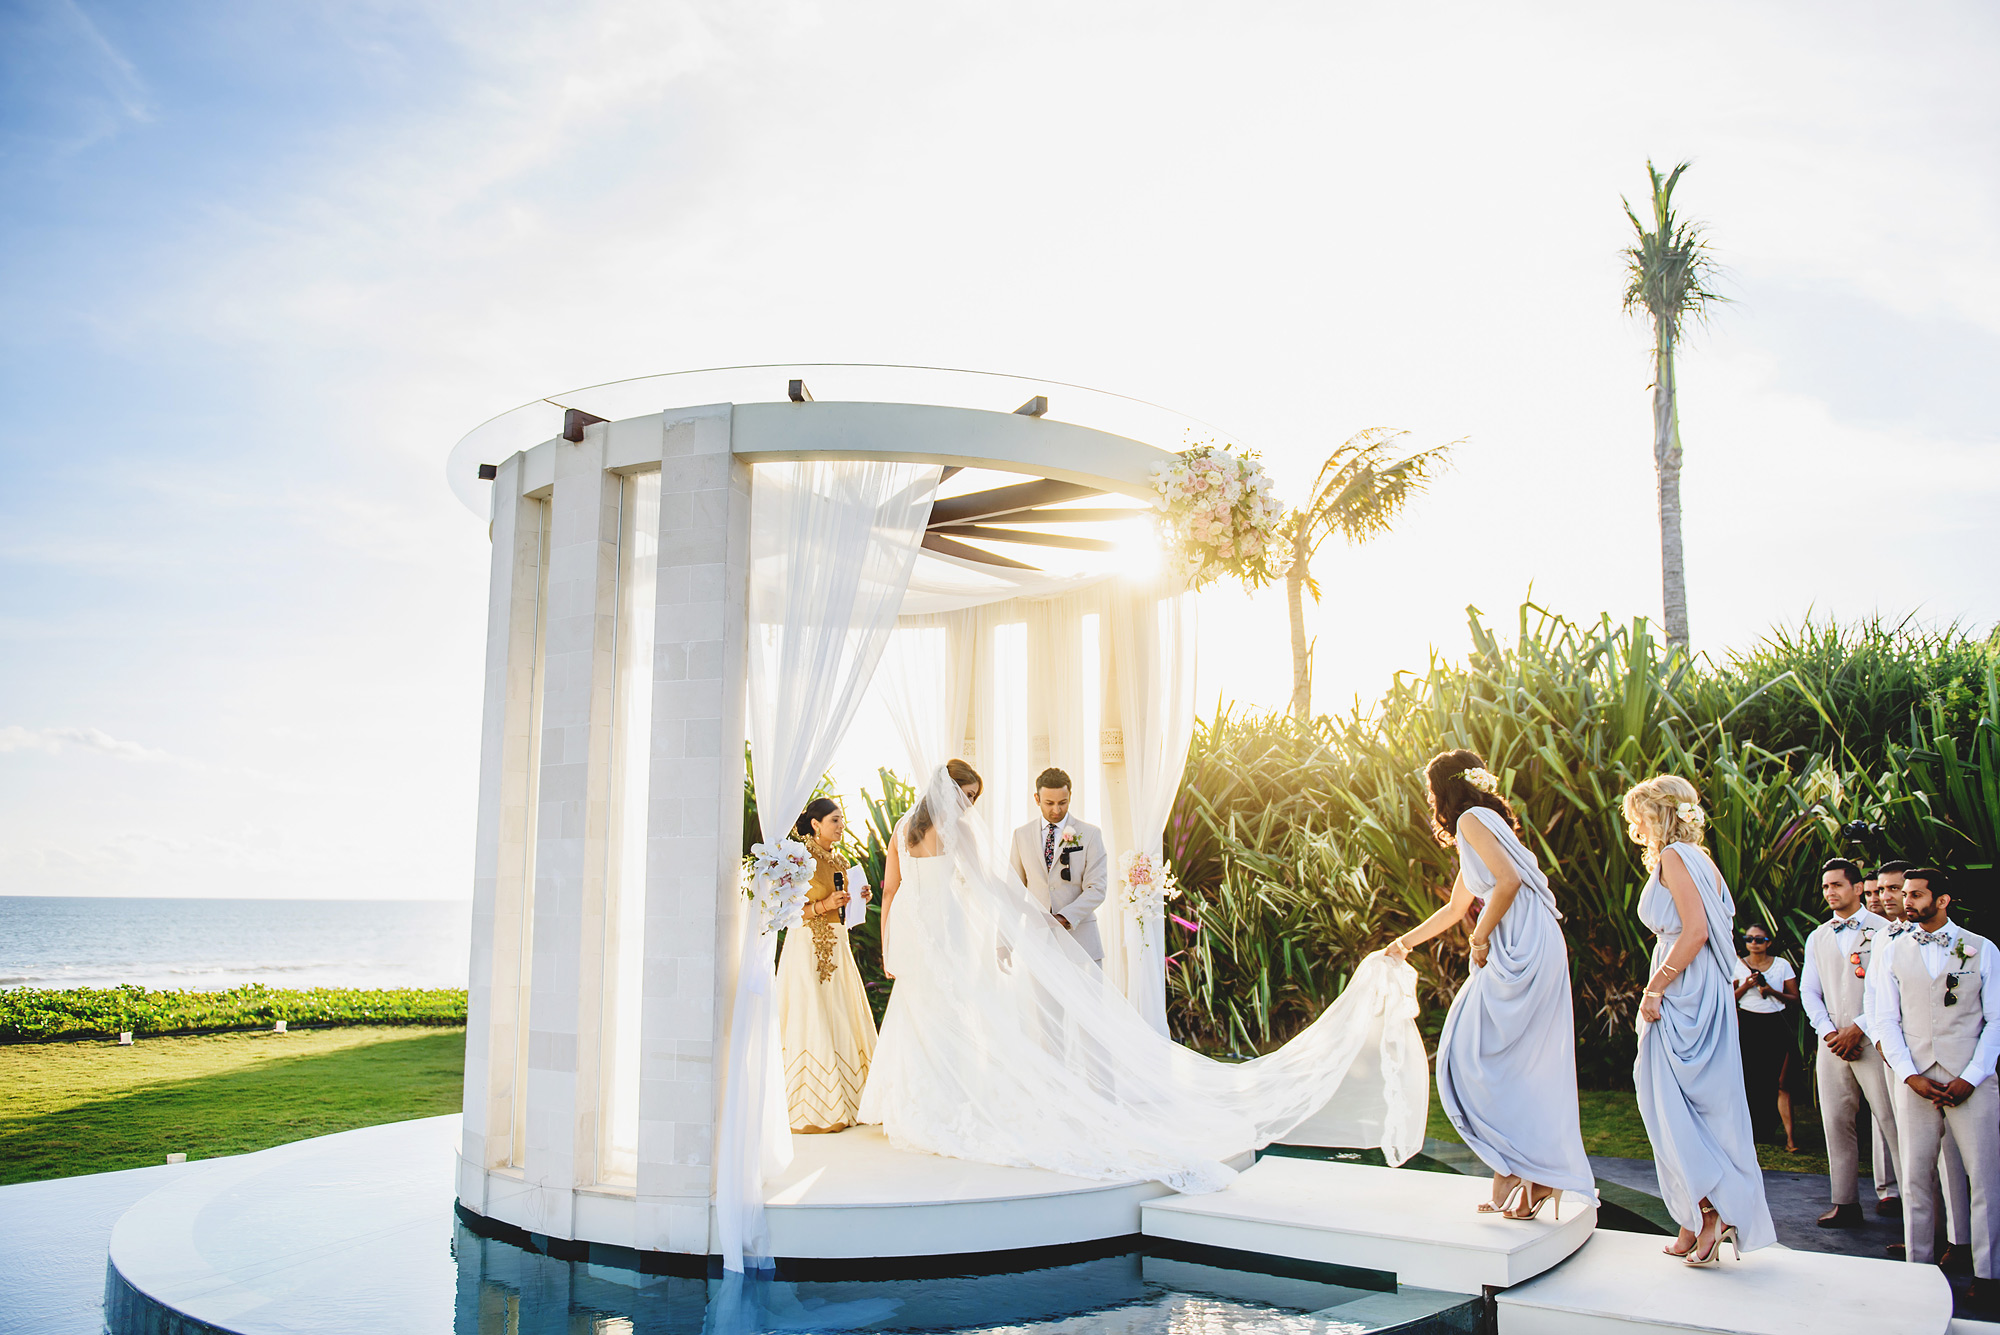 Couple in modern gazebo near beach - photo by Ross Harvey